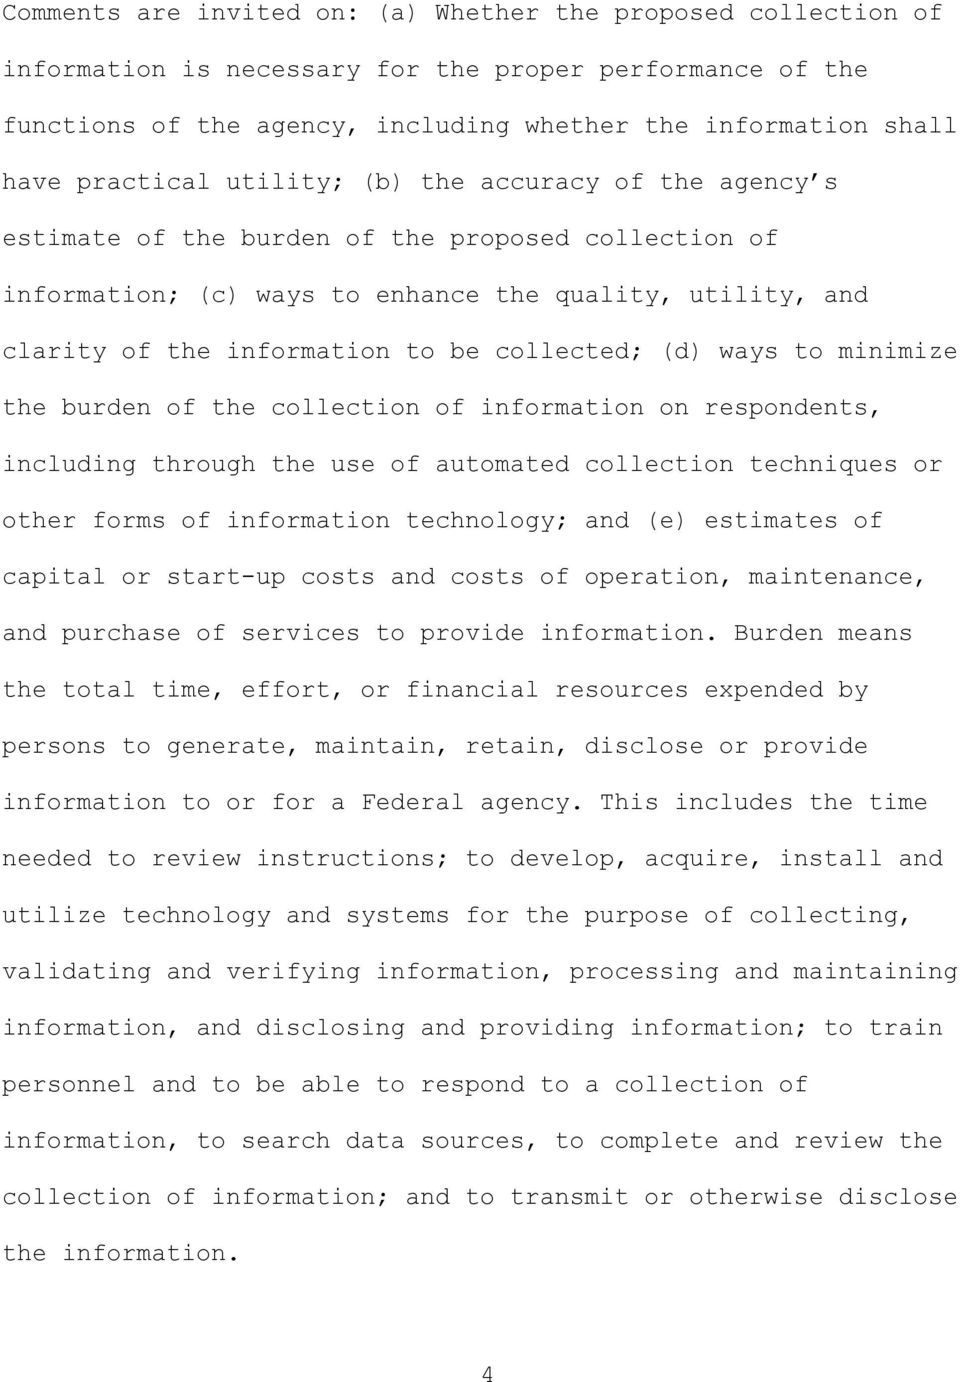 collected; (d) ways to minimize the burden of the collection of information on respondents, including through the use of automated collection techniques or other forms of information technology; and